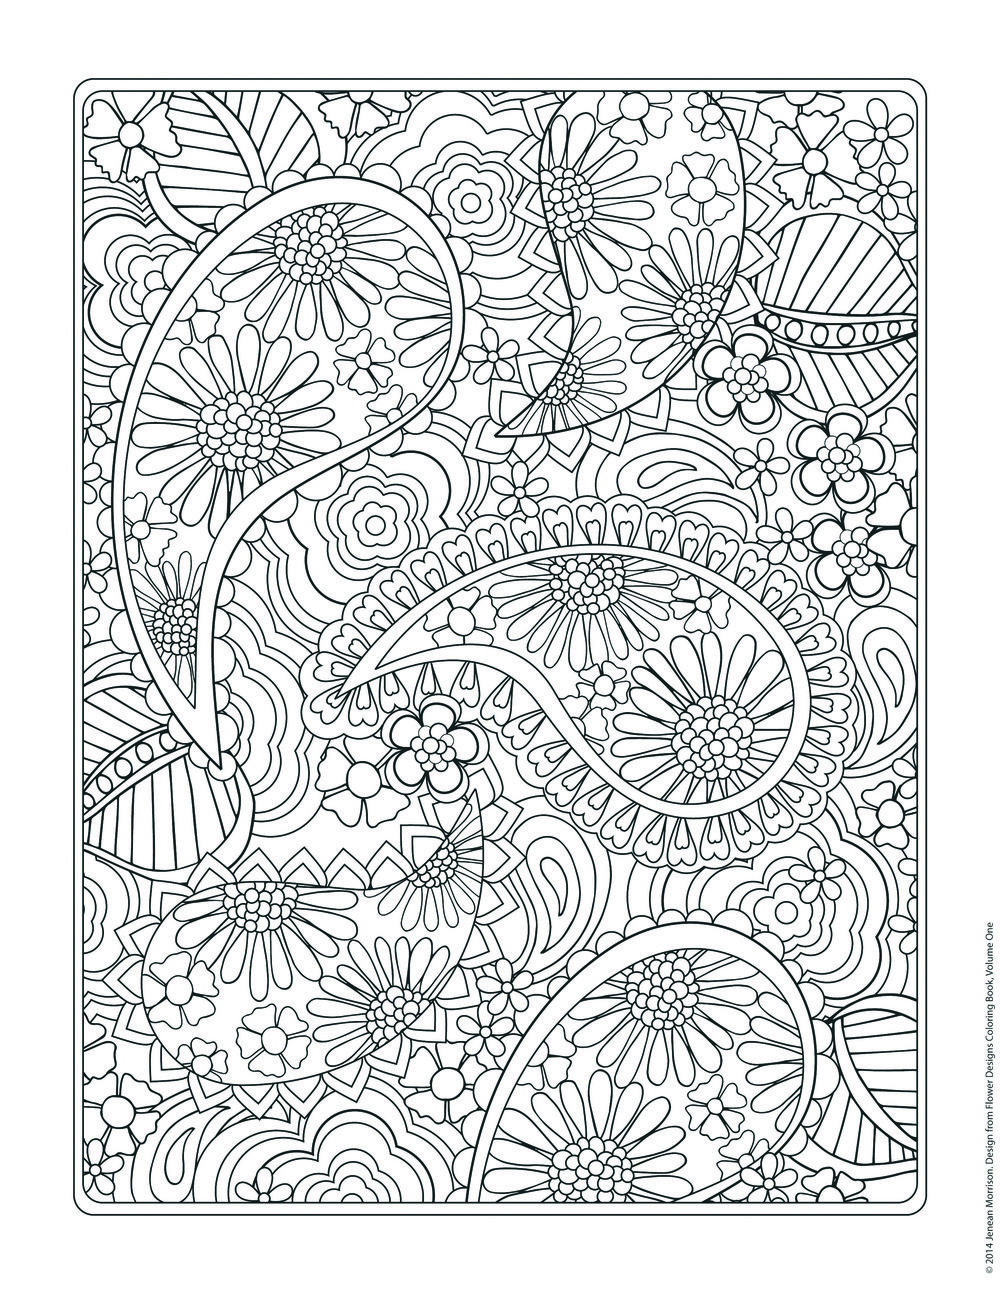 flower designs coloring book - Design Coloring Pages